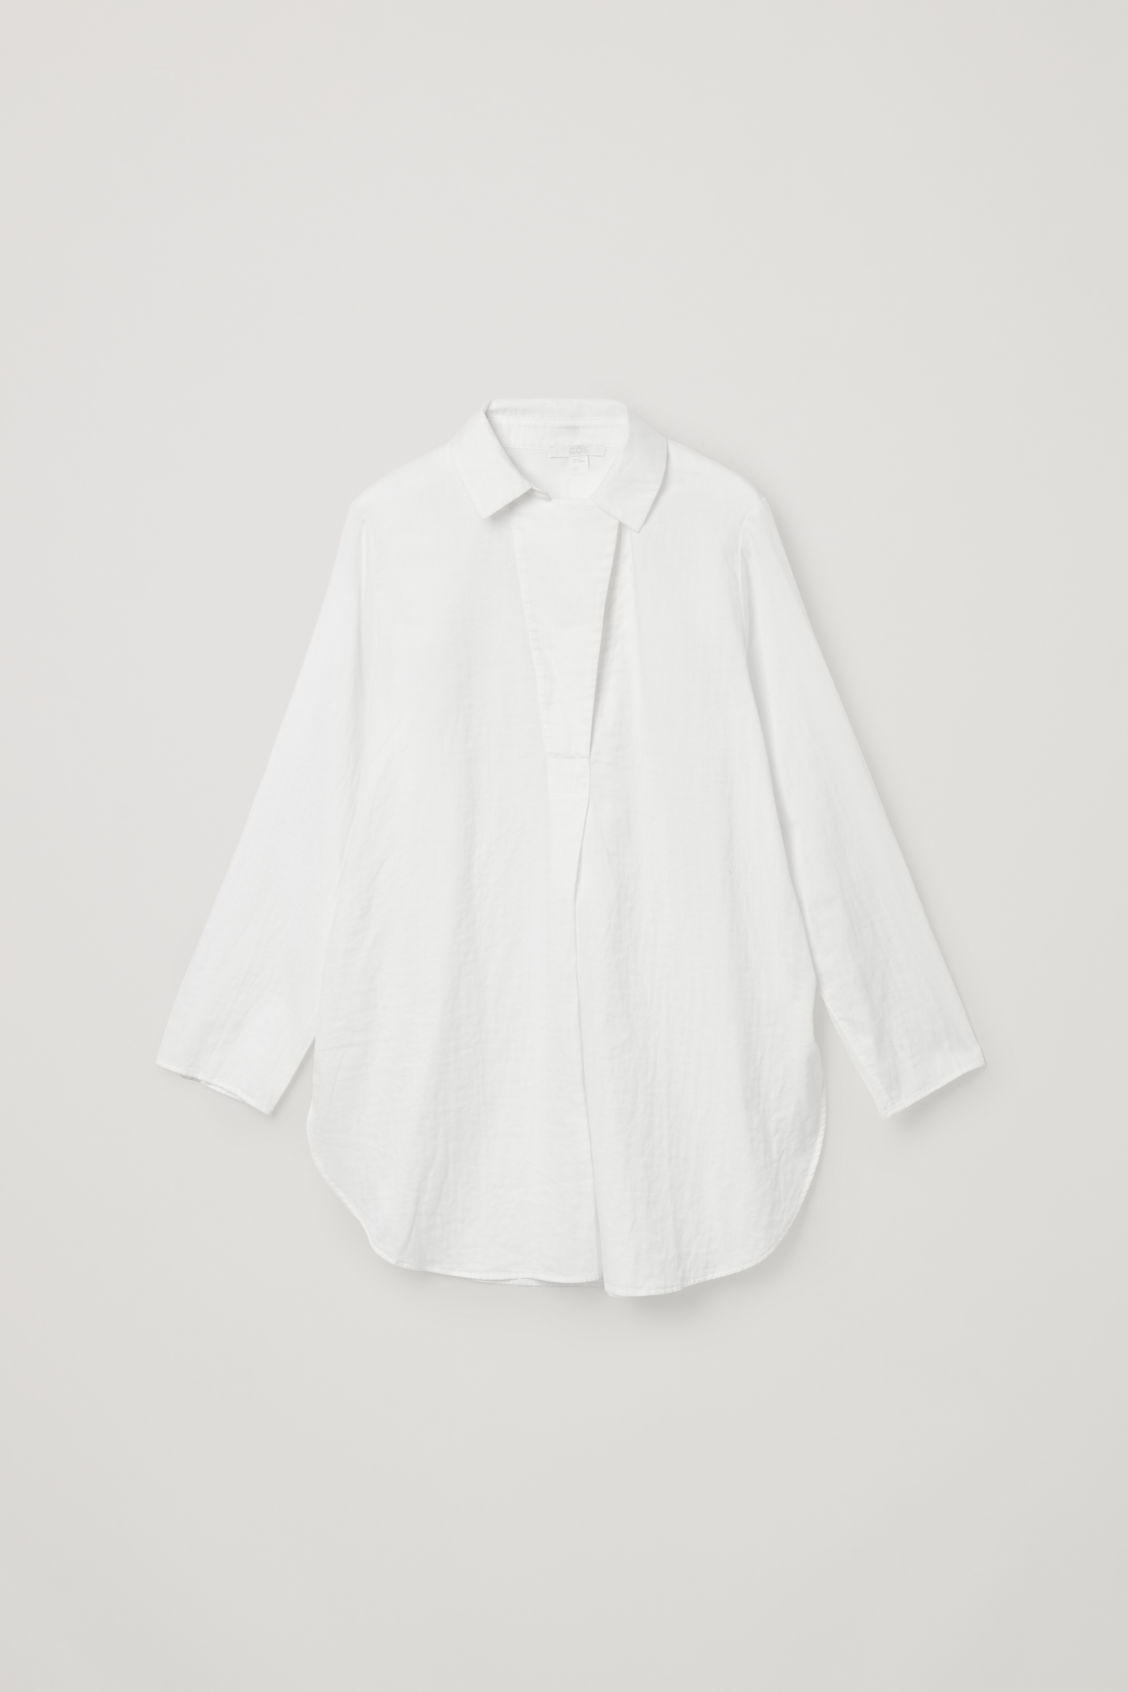 Cos Oversized Organic Cotton Lightweight Shirt In White